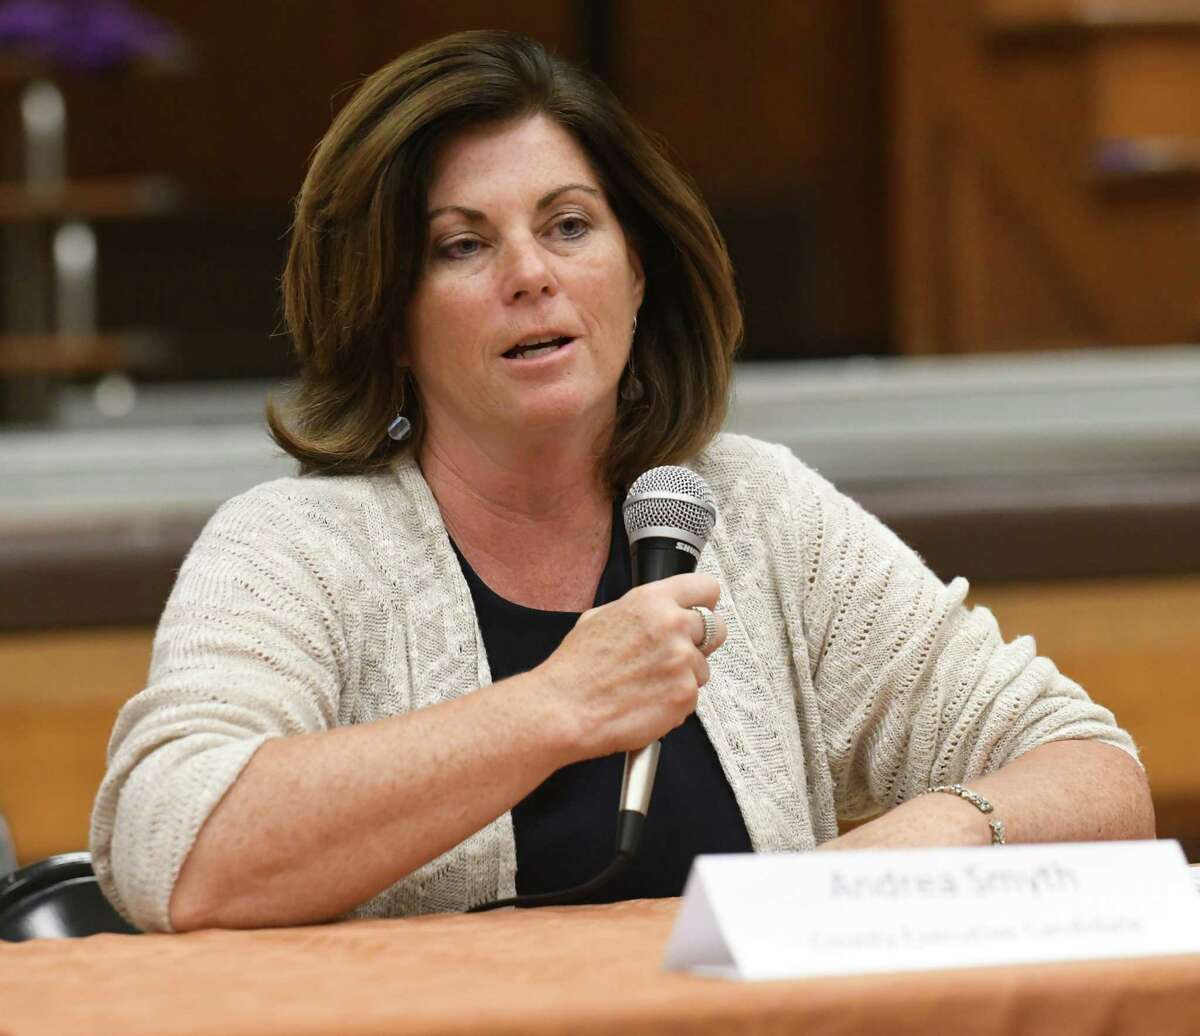 Rensselaer Co. Executive Democratic candidate Andrea Smyth speaks as she and Assemblyman Steven McLaughlin, the Republican candidate, answer questions at Troy candidates night sponsored by Troy Neighborhood Action Council at School 12 on Monday, Oct. 2, 2017 in Troy, N.Y. (Lori Van Buren / Times Union)